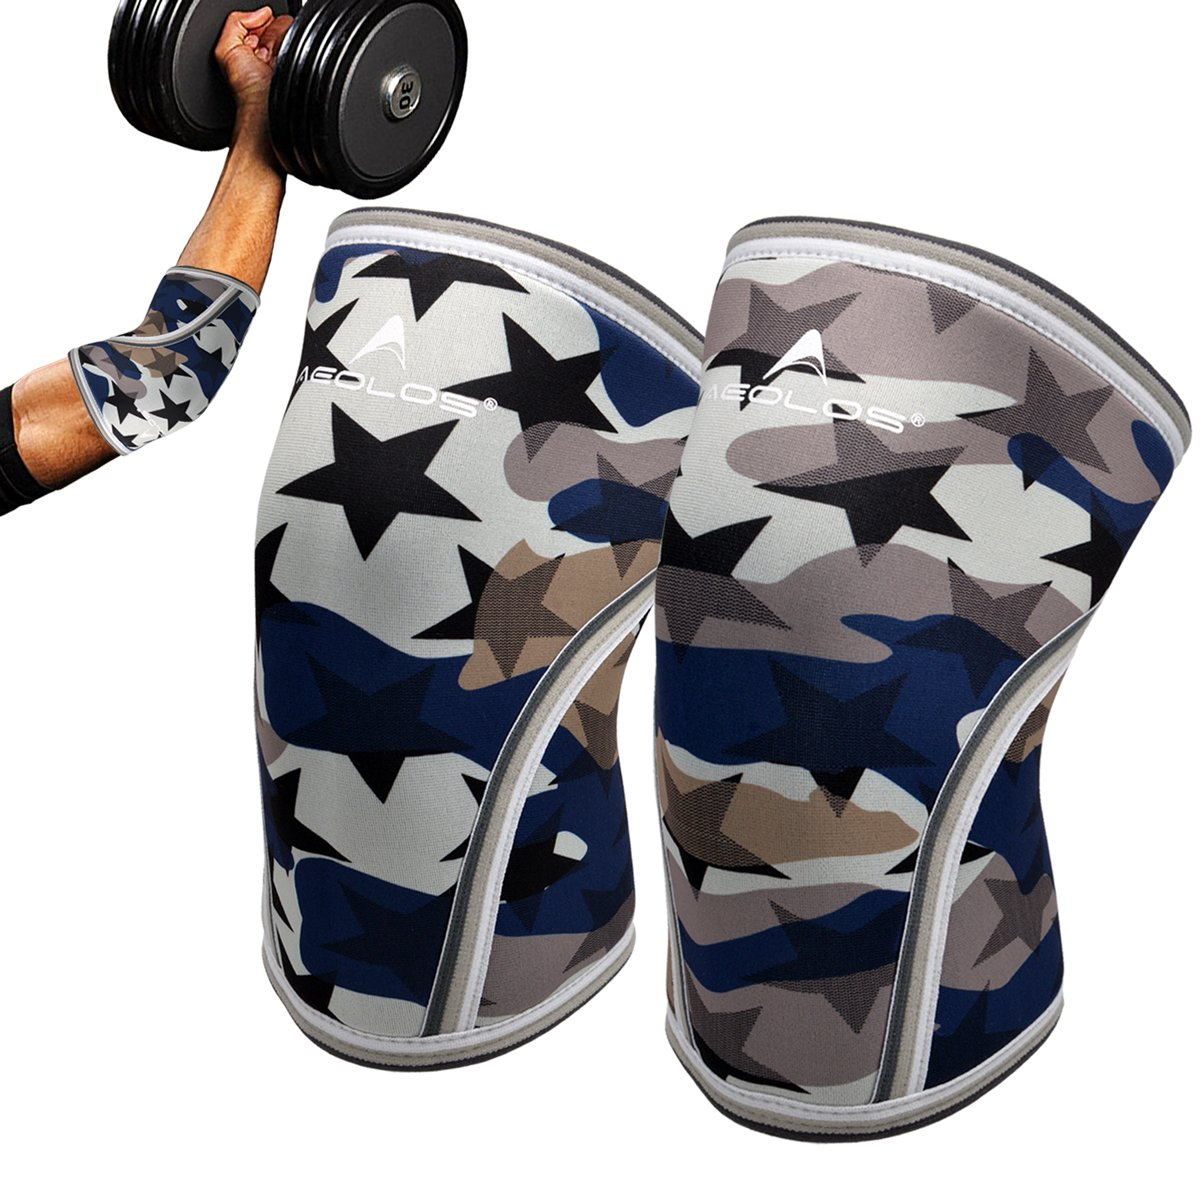 Elbow Sleeves(Pair),Perfect Support for Squat,Crossfit,Weightlifting,Powerlifting,Tennis, Golf & Basketball(X-Large)